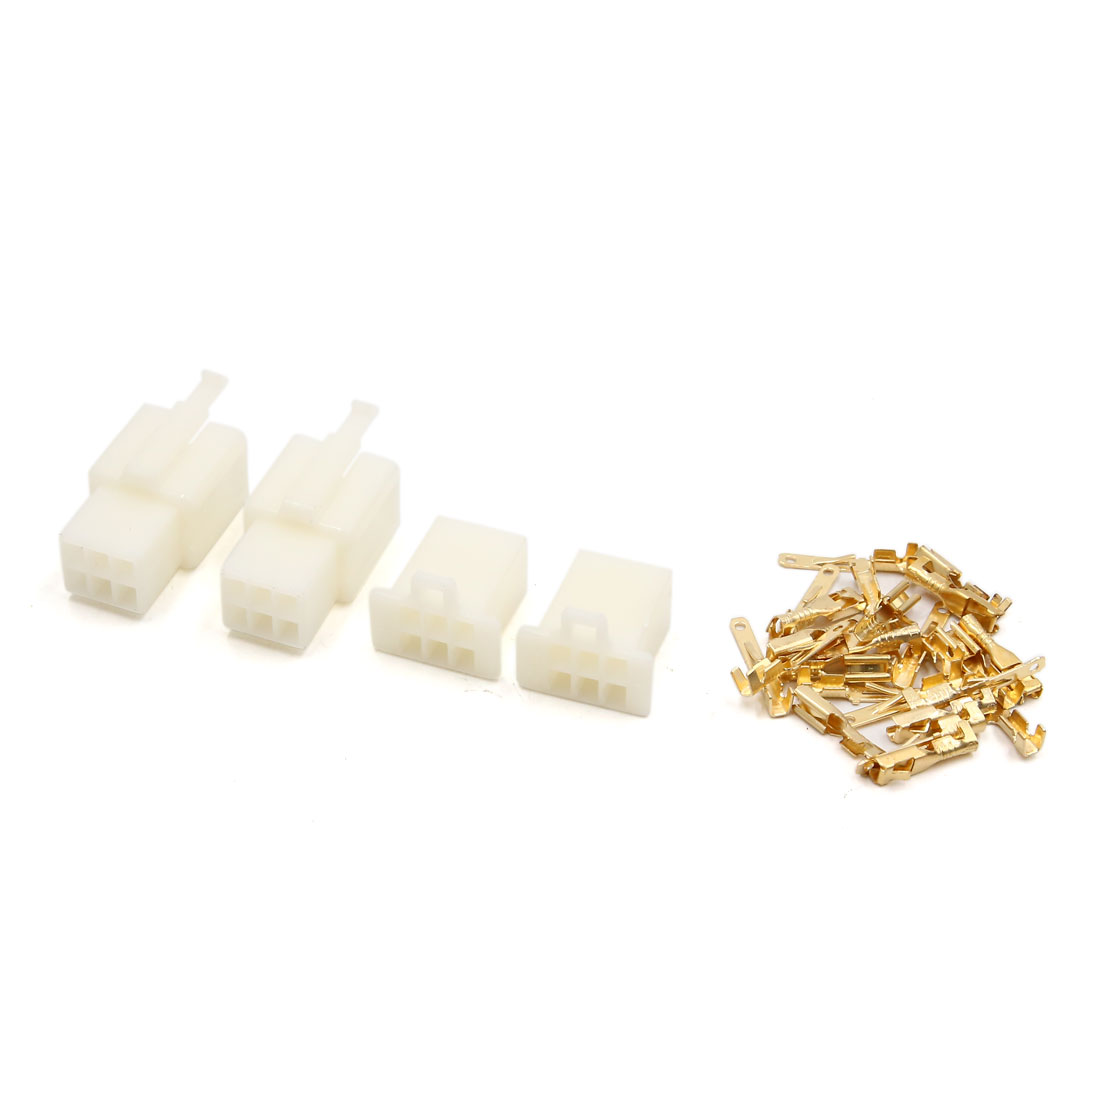 """2 Sets 6-pin 2.8mm 7/64"""" Male/Female 22-18AWG Nylon Latching Connector - image 1 of 1"""